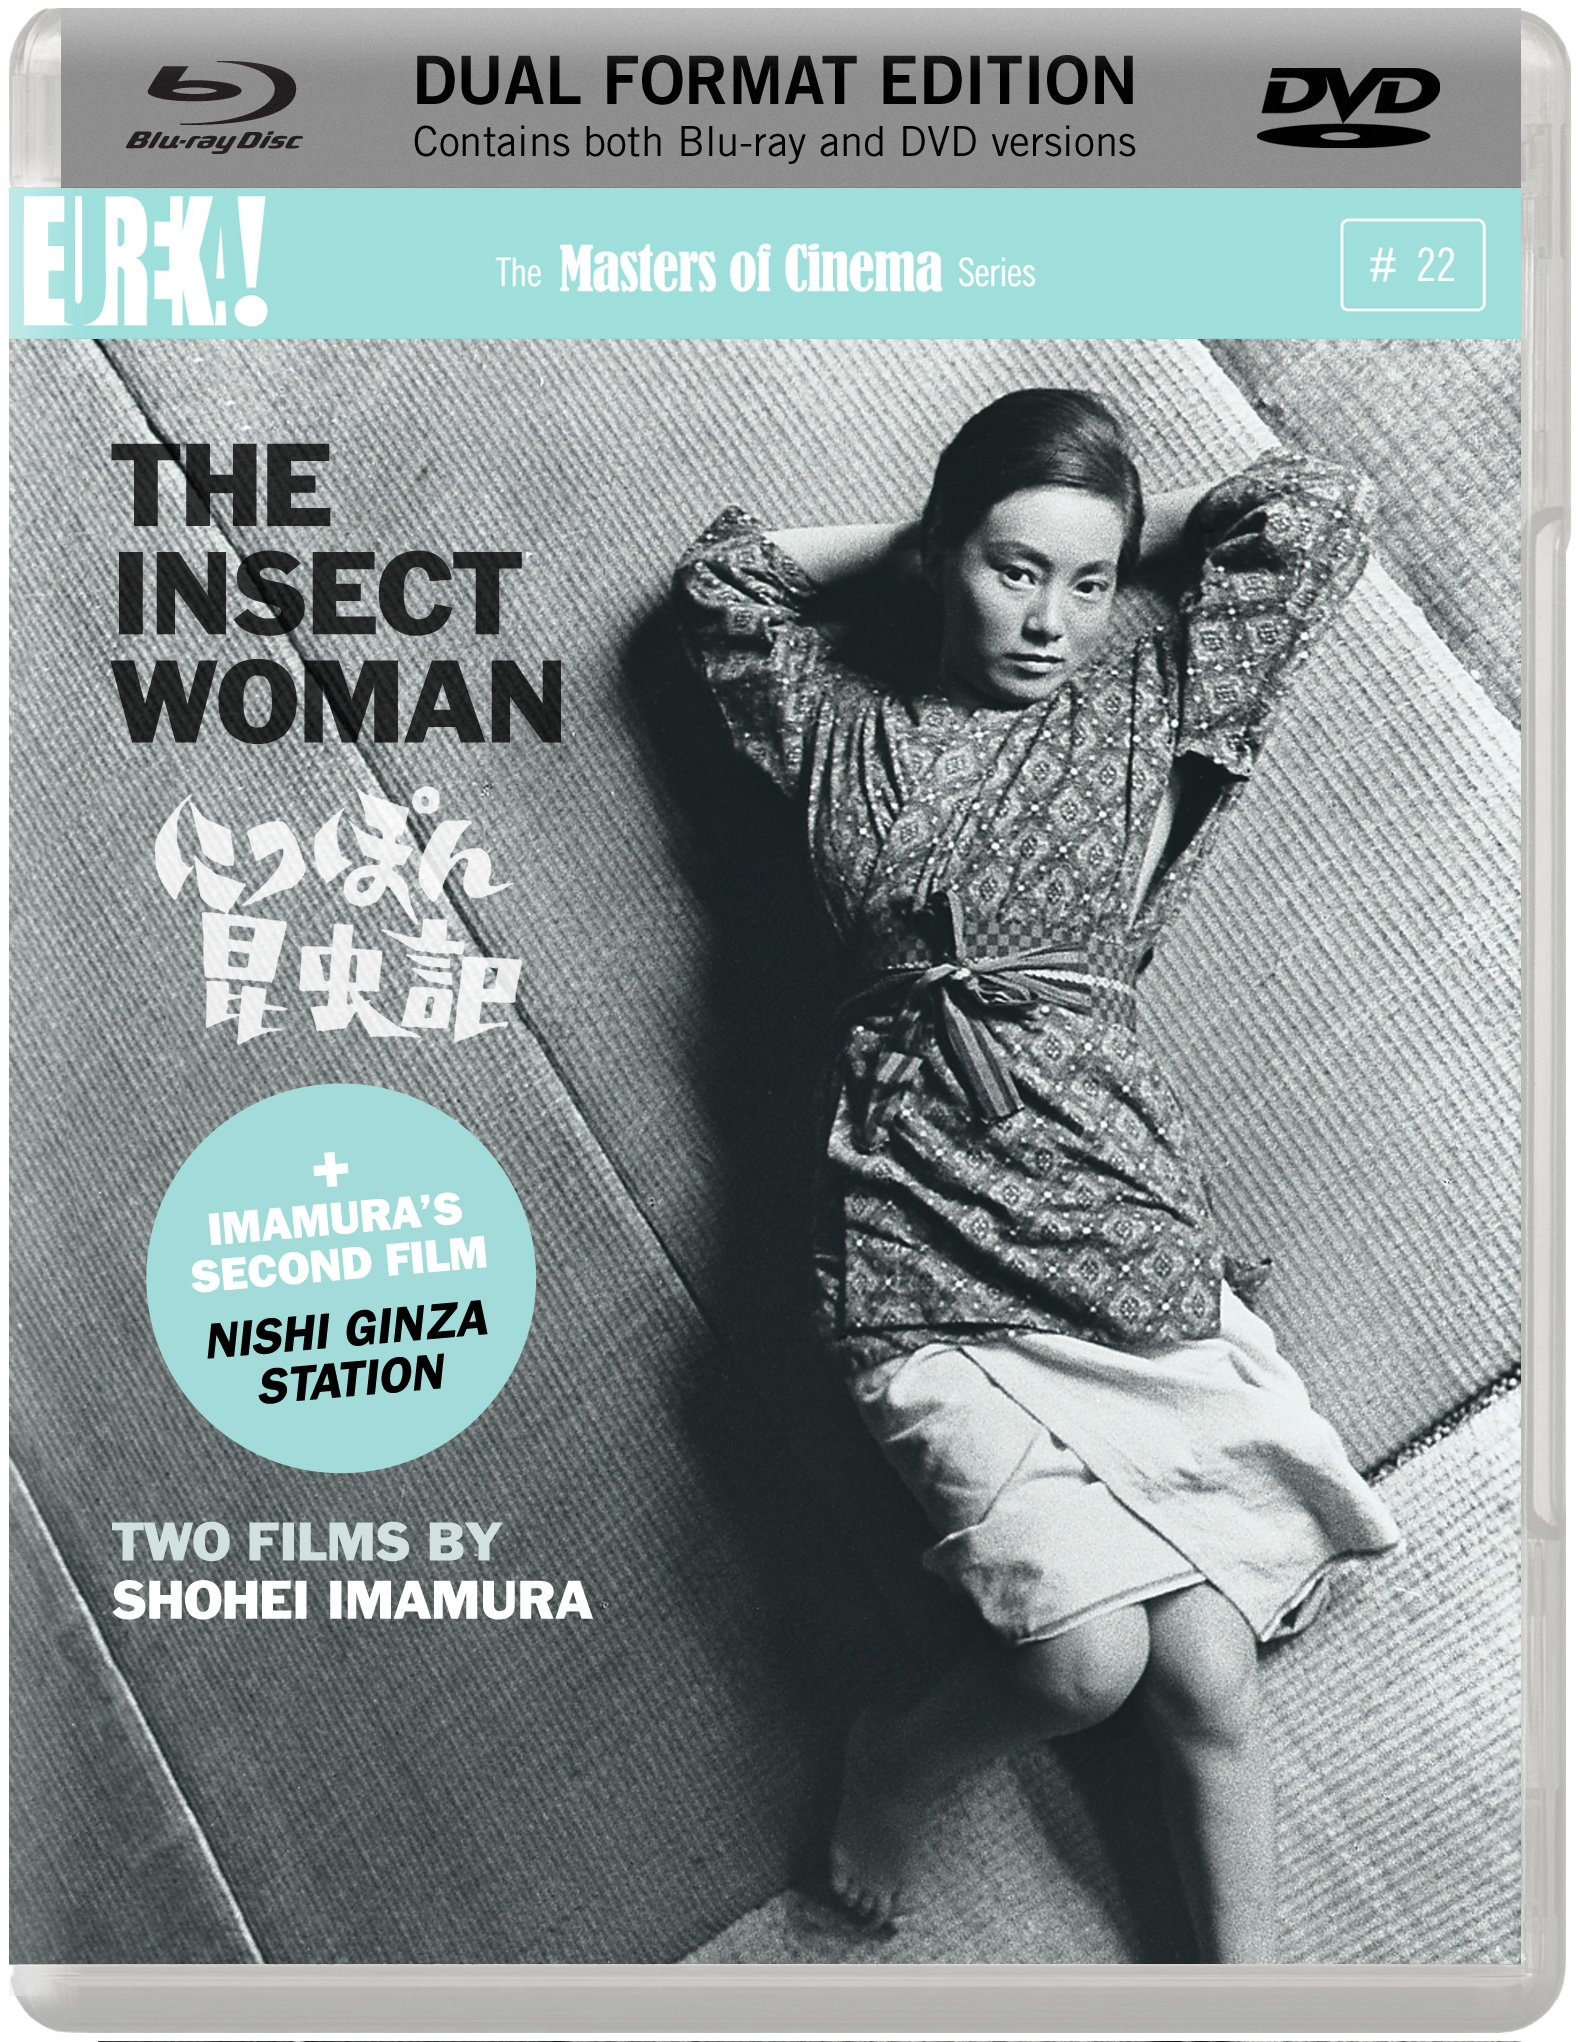 Woman to insect fucked photo